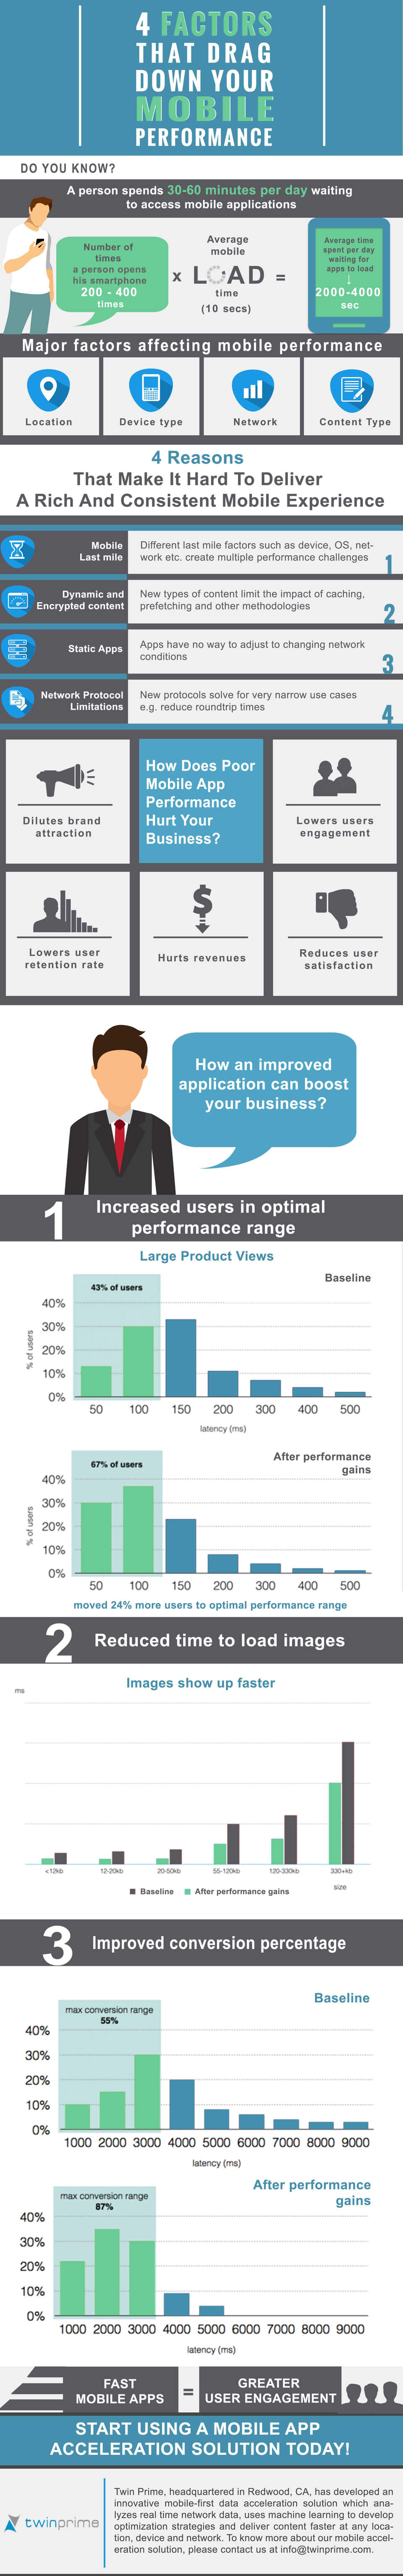 Factors-That-Drag-Down-Your-Mobile-Performance_less-dense-infographic